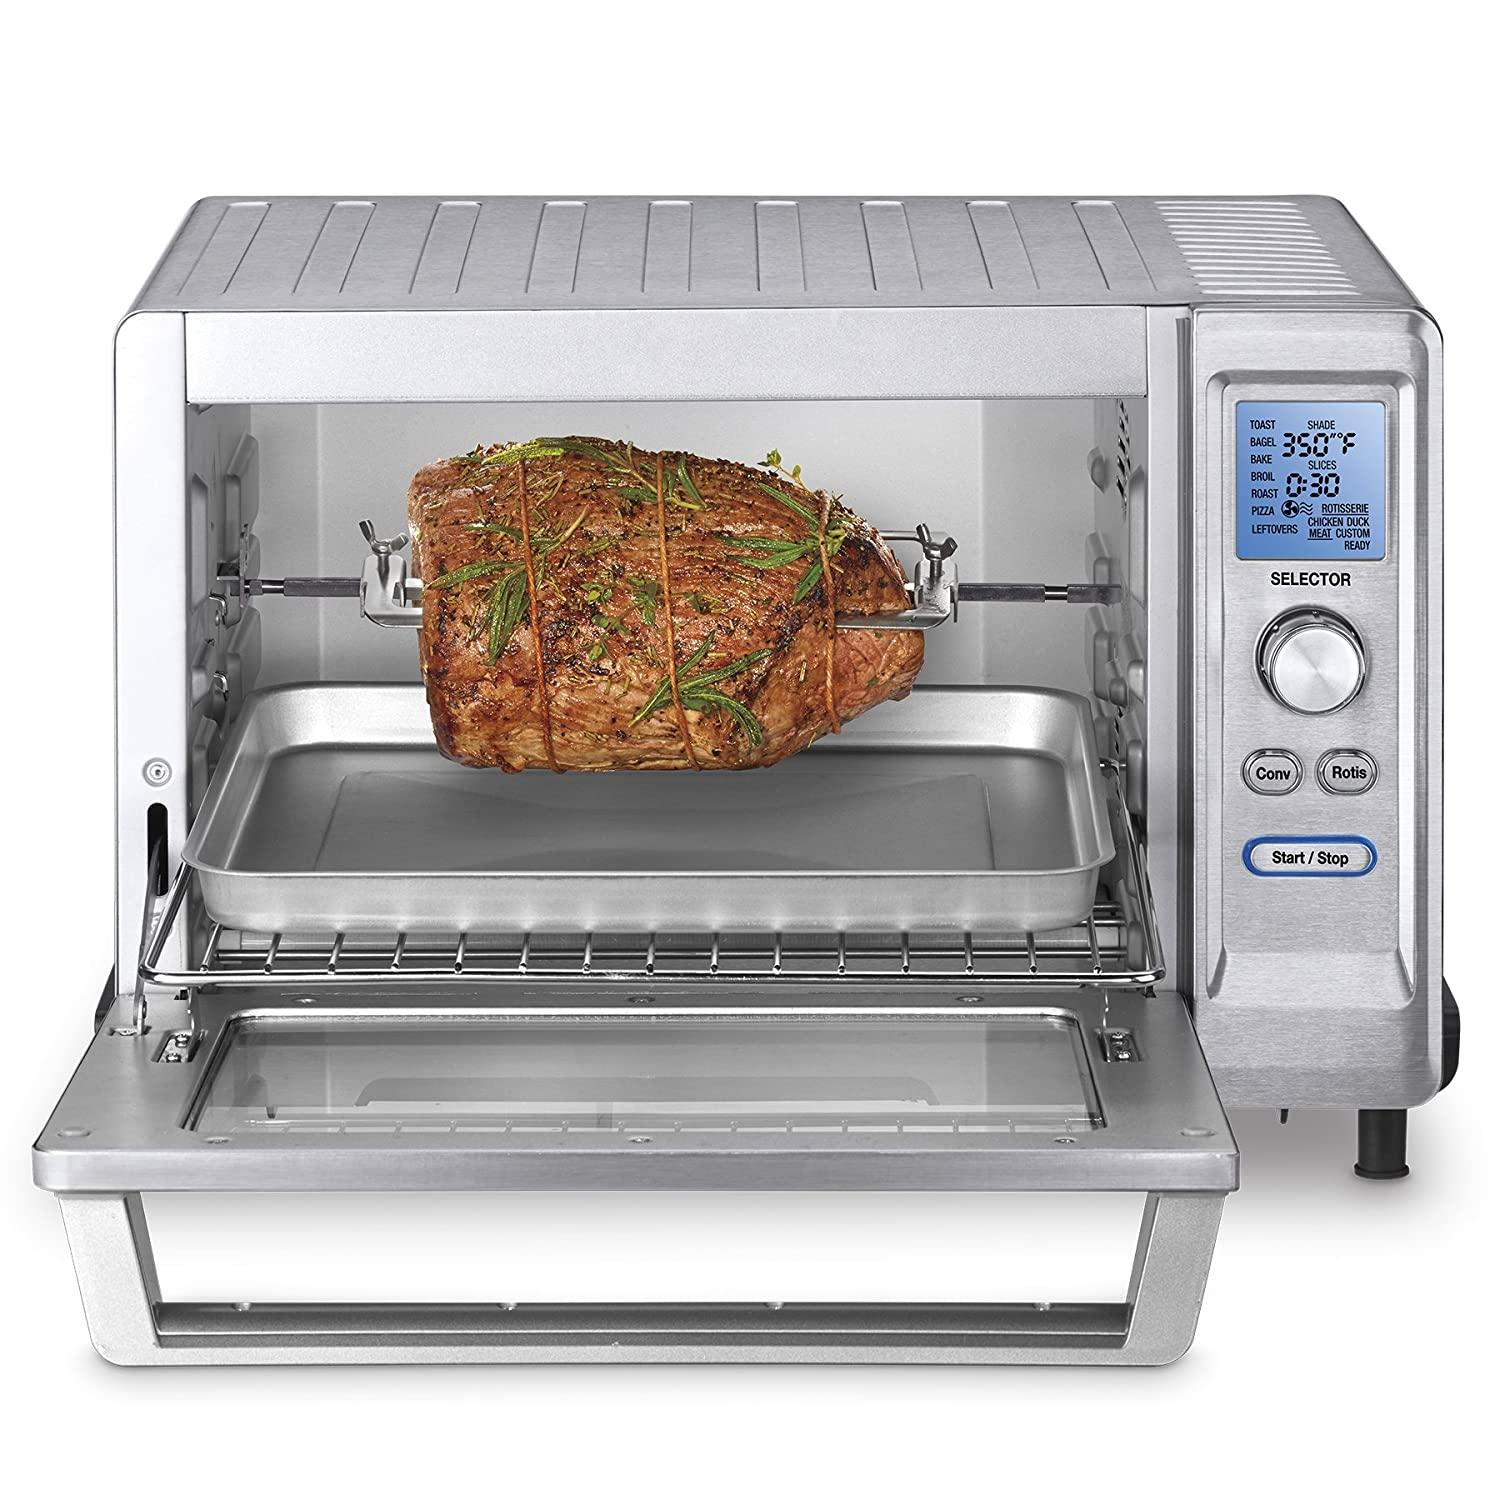 Convection Countertop Oven Stainless Steel : ... TOB-200 Rotisserie Convection Toaster Oven, Stainless Steel eBay